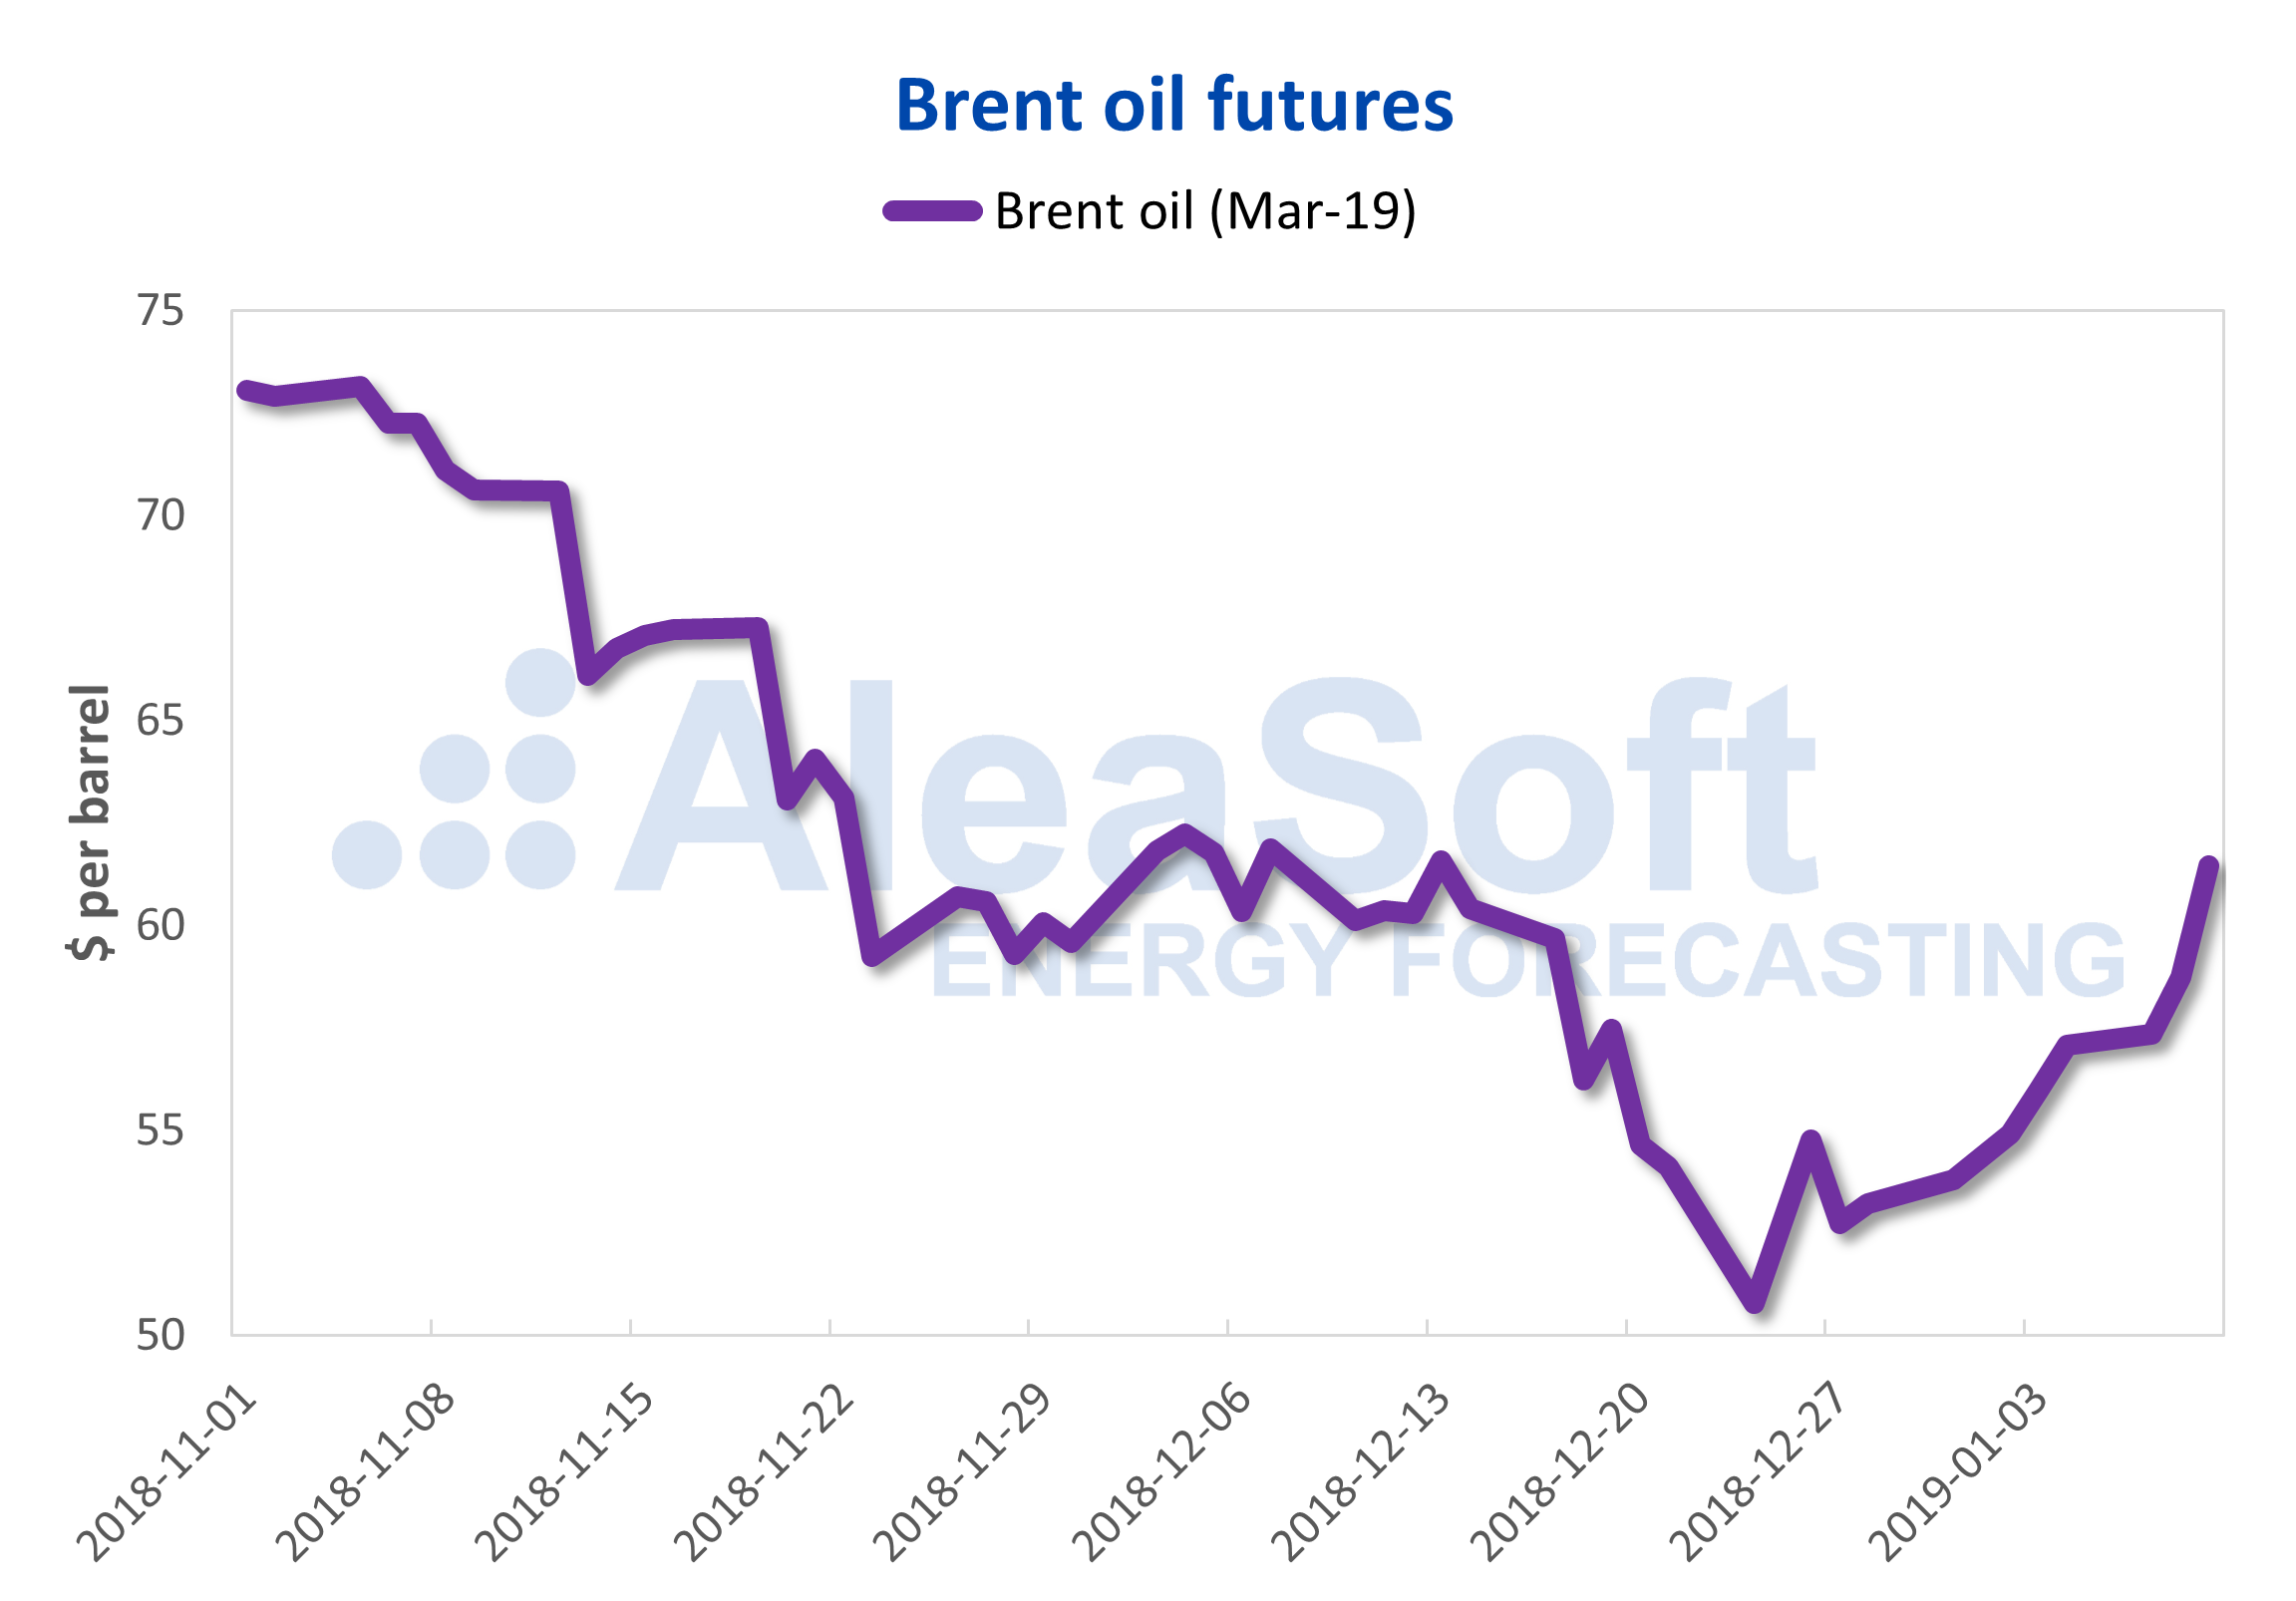 AleaSoft - Brent oil futures